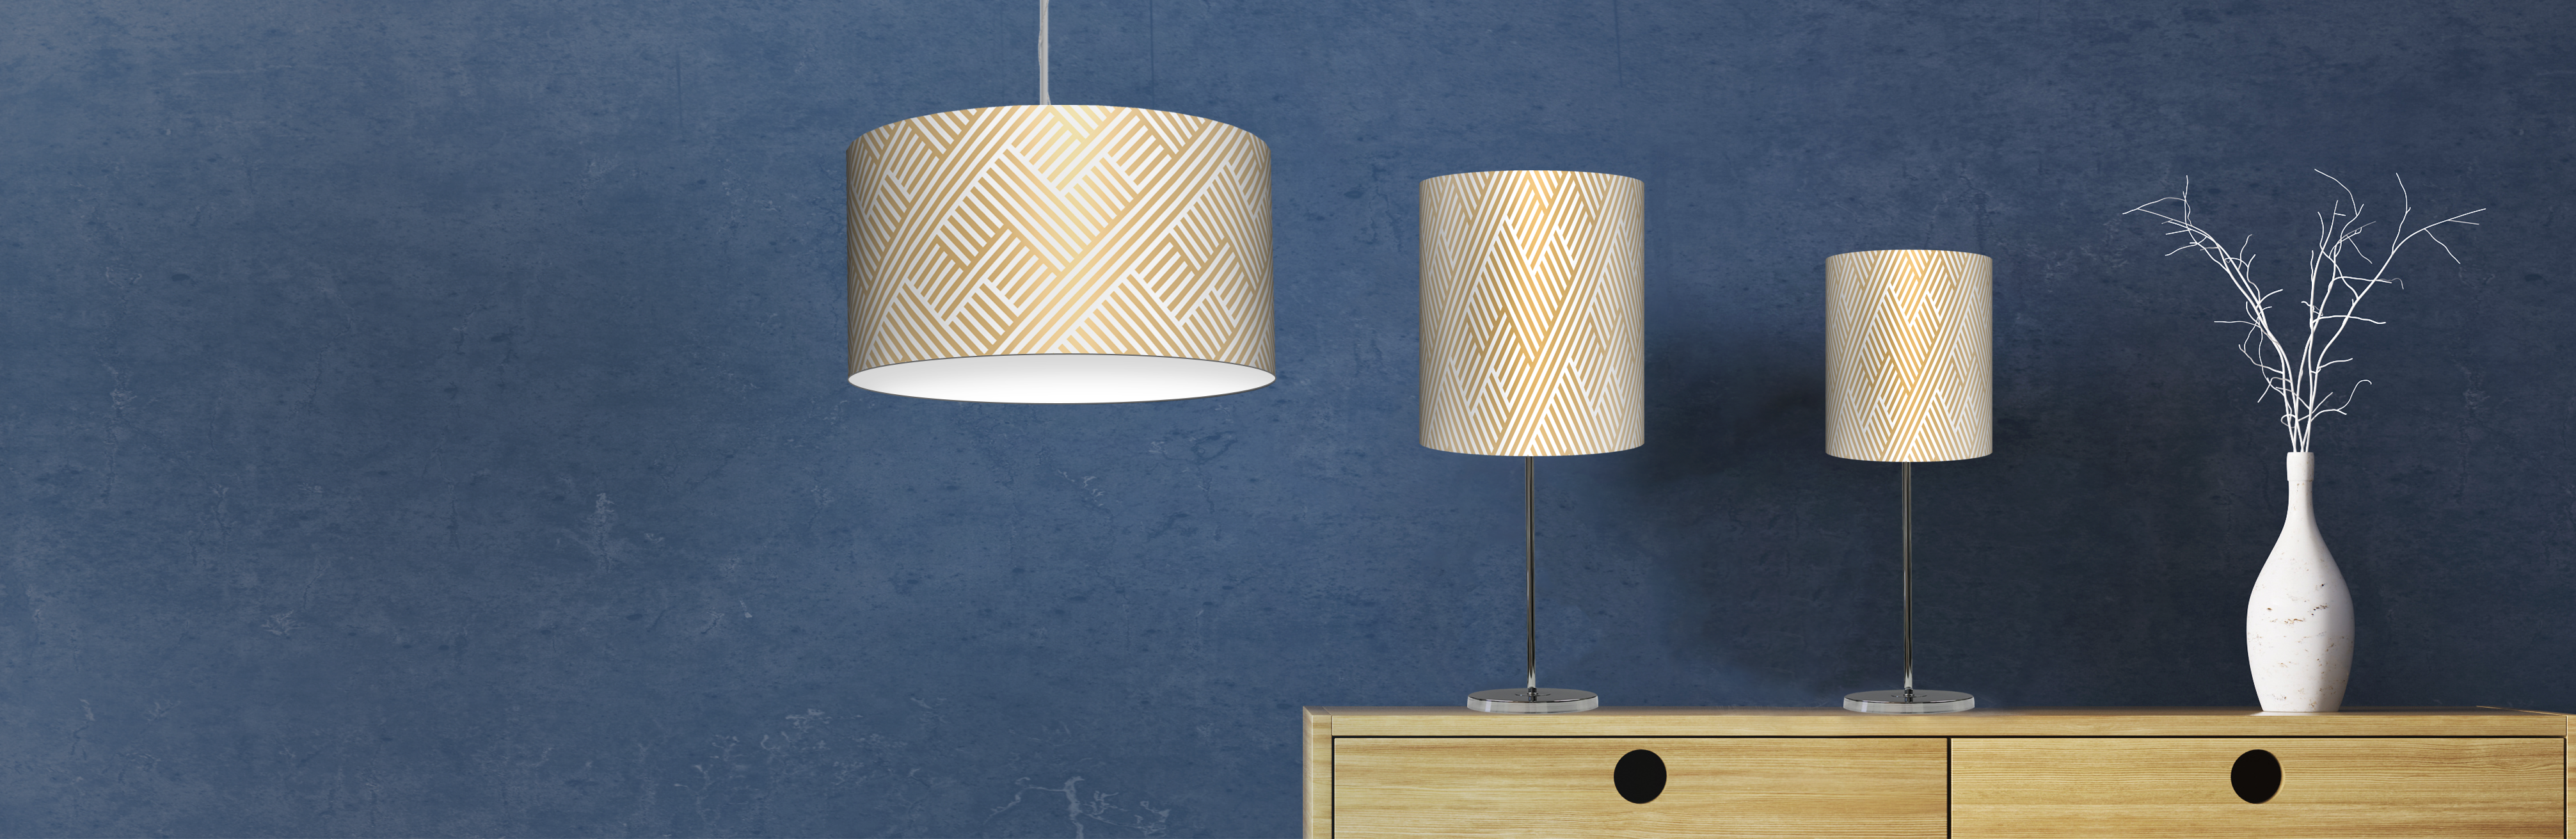 Custom Table Lamps | Customer Printed Lamp Shades | Pendant Lamps ...